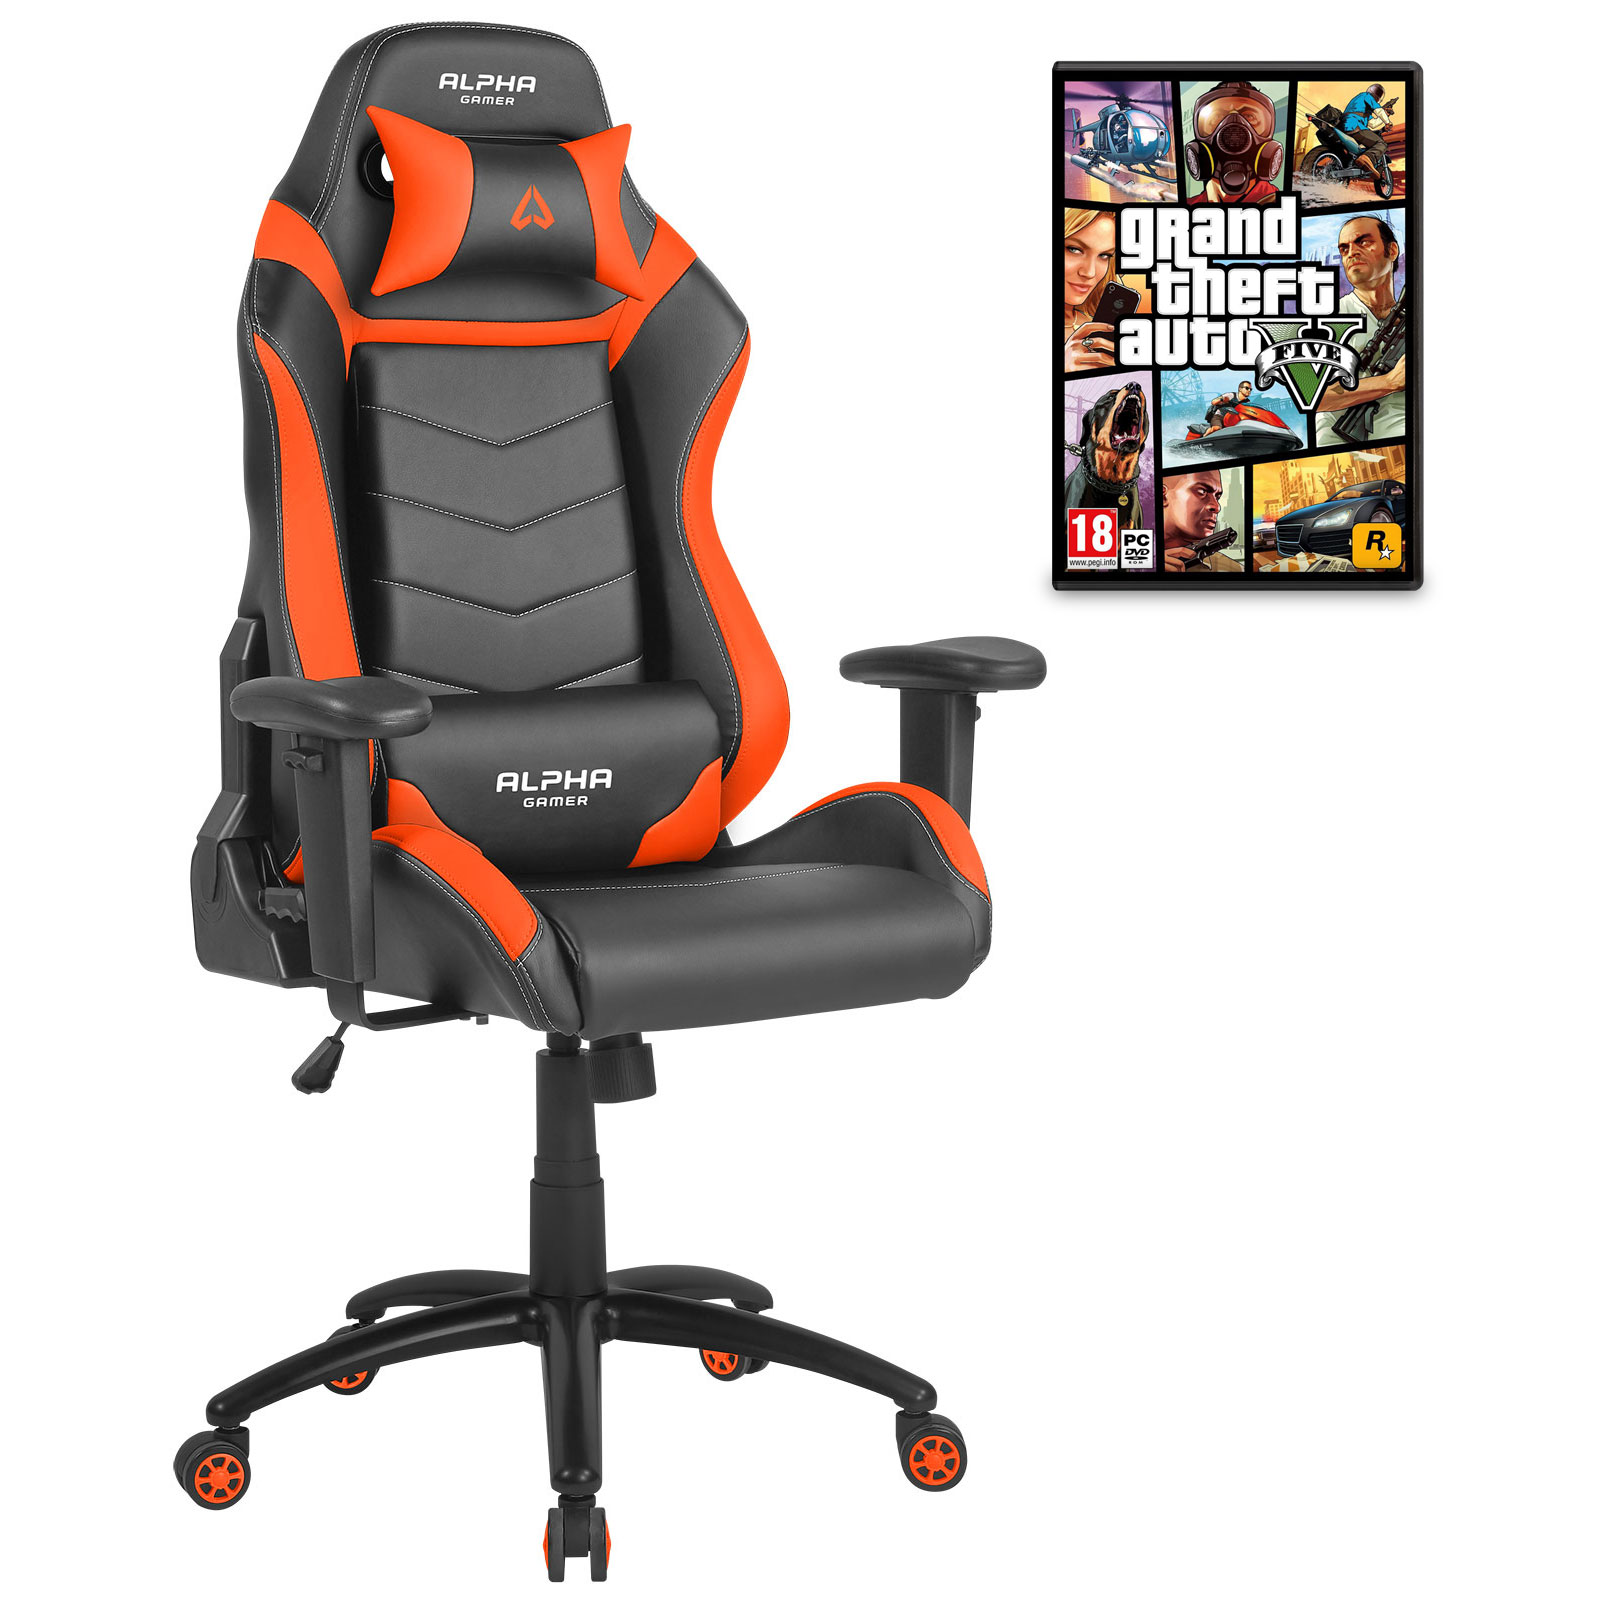 alpha gamer gamma orange jeu gta v offert fauteuil gamer alpha gamer sur. Black Bedroom Furniture Sets. Home Design Ideas